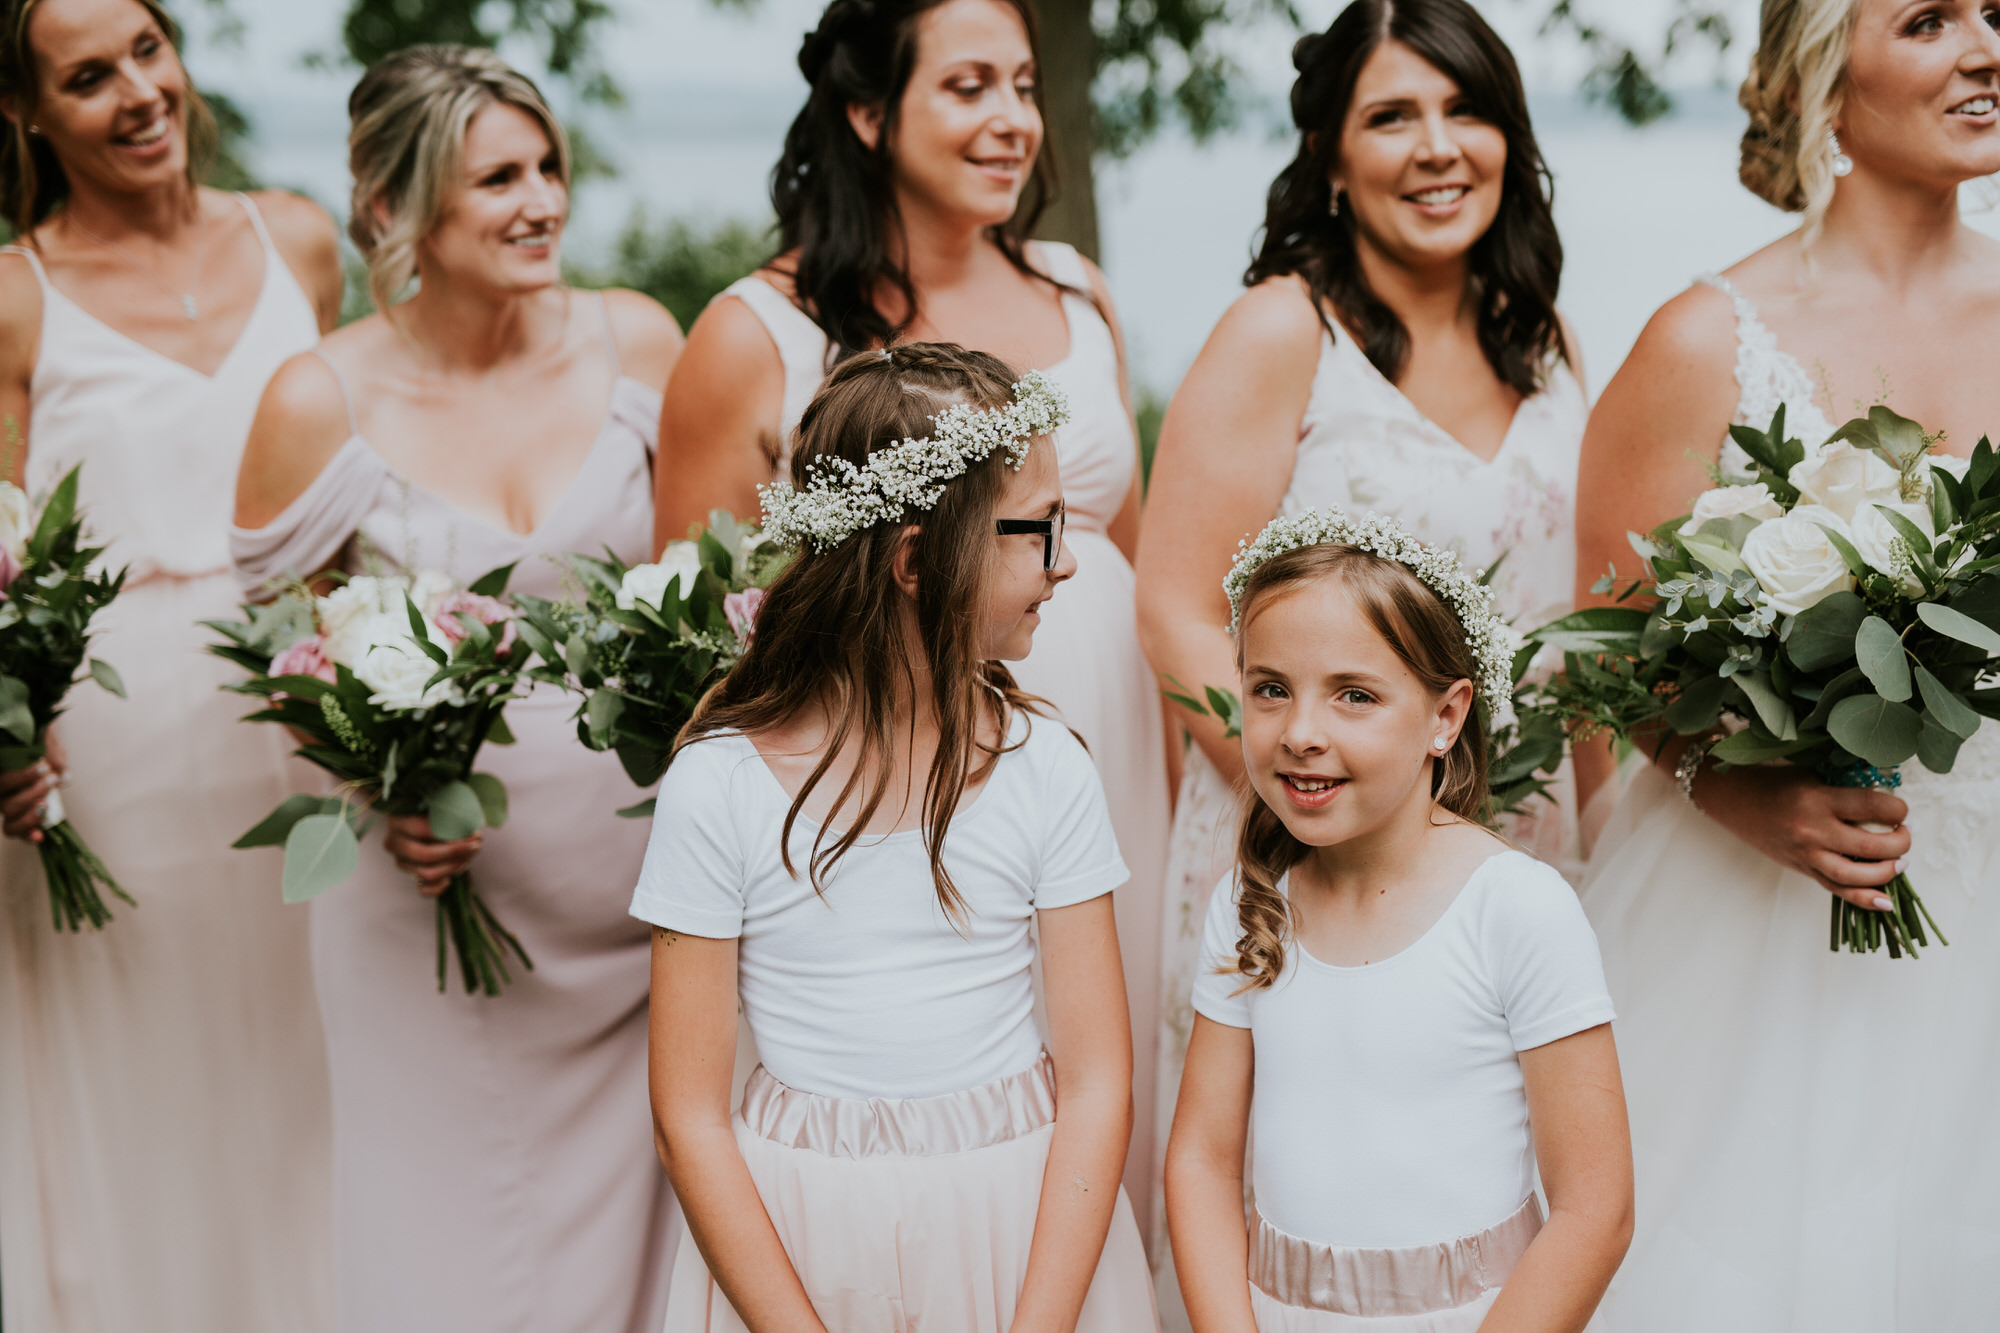 Elmhirst Resort Wedding - Bridal party portrait with flower girls